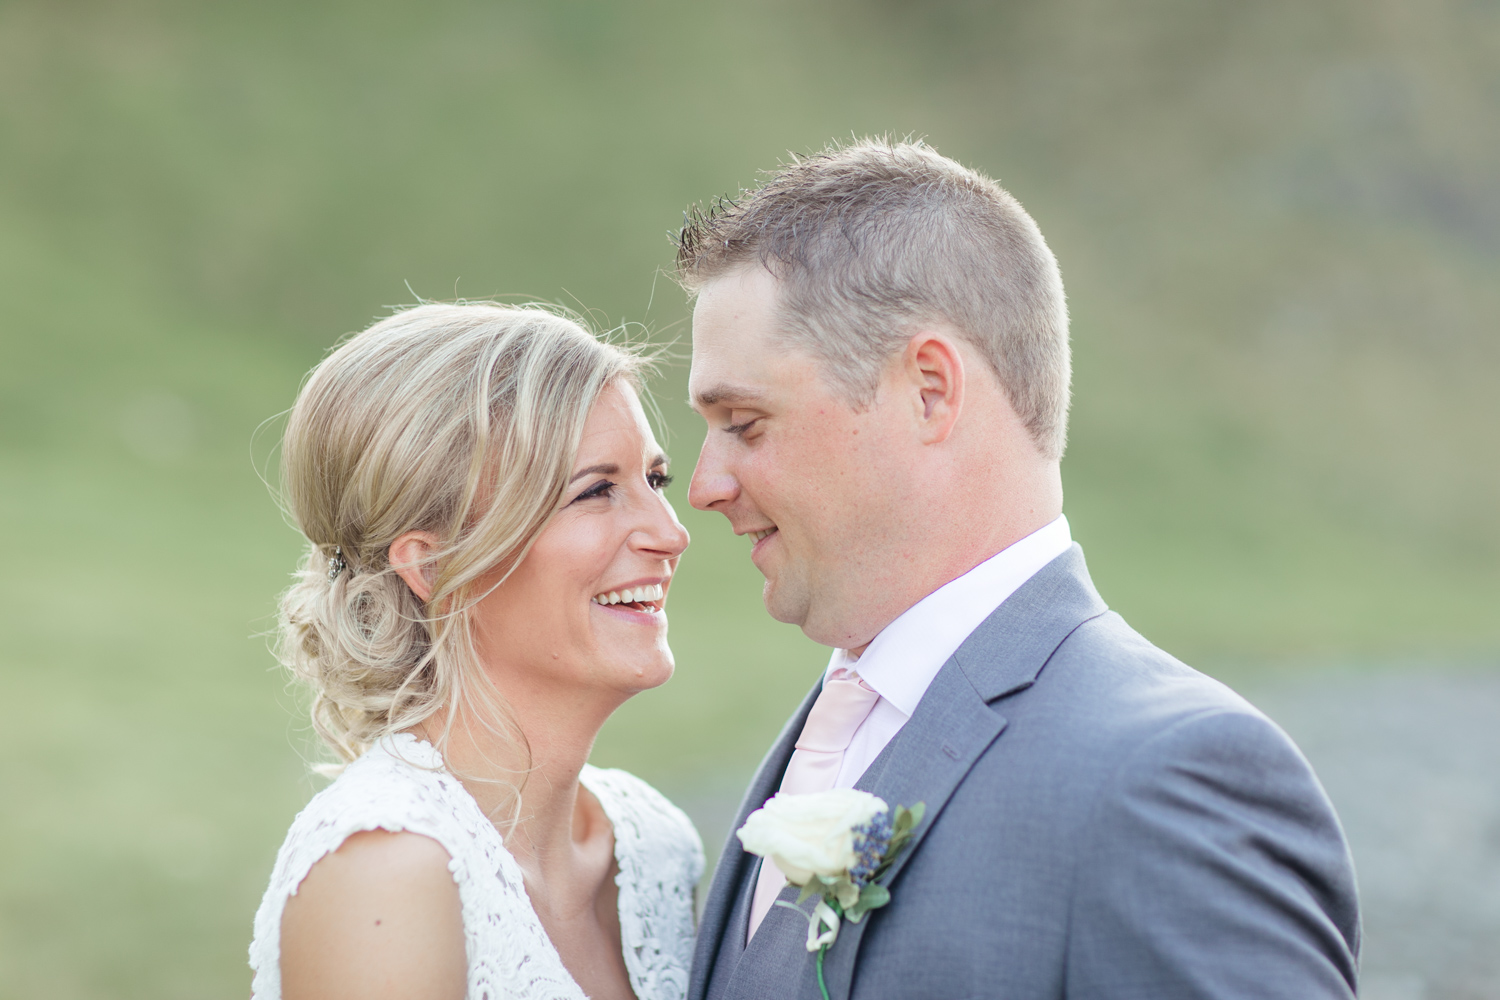 close up of bride and groom looking at each other for their wedding photographs